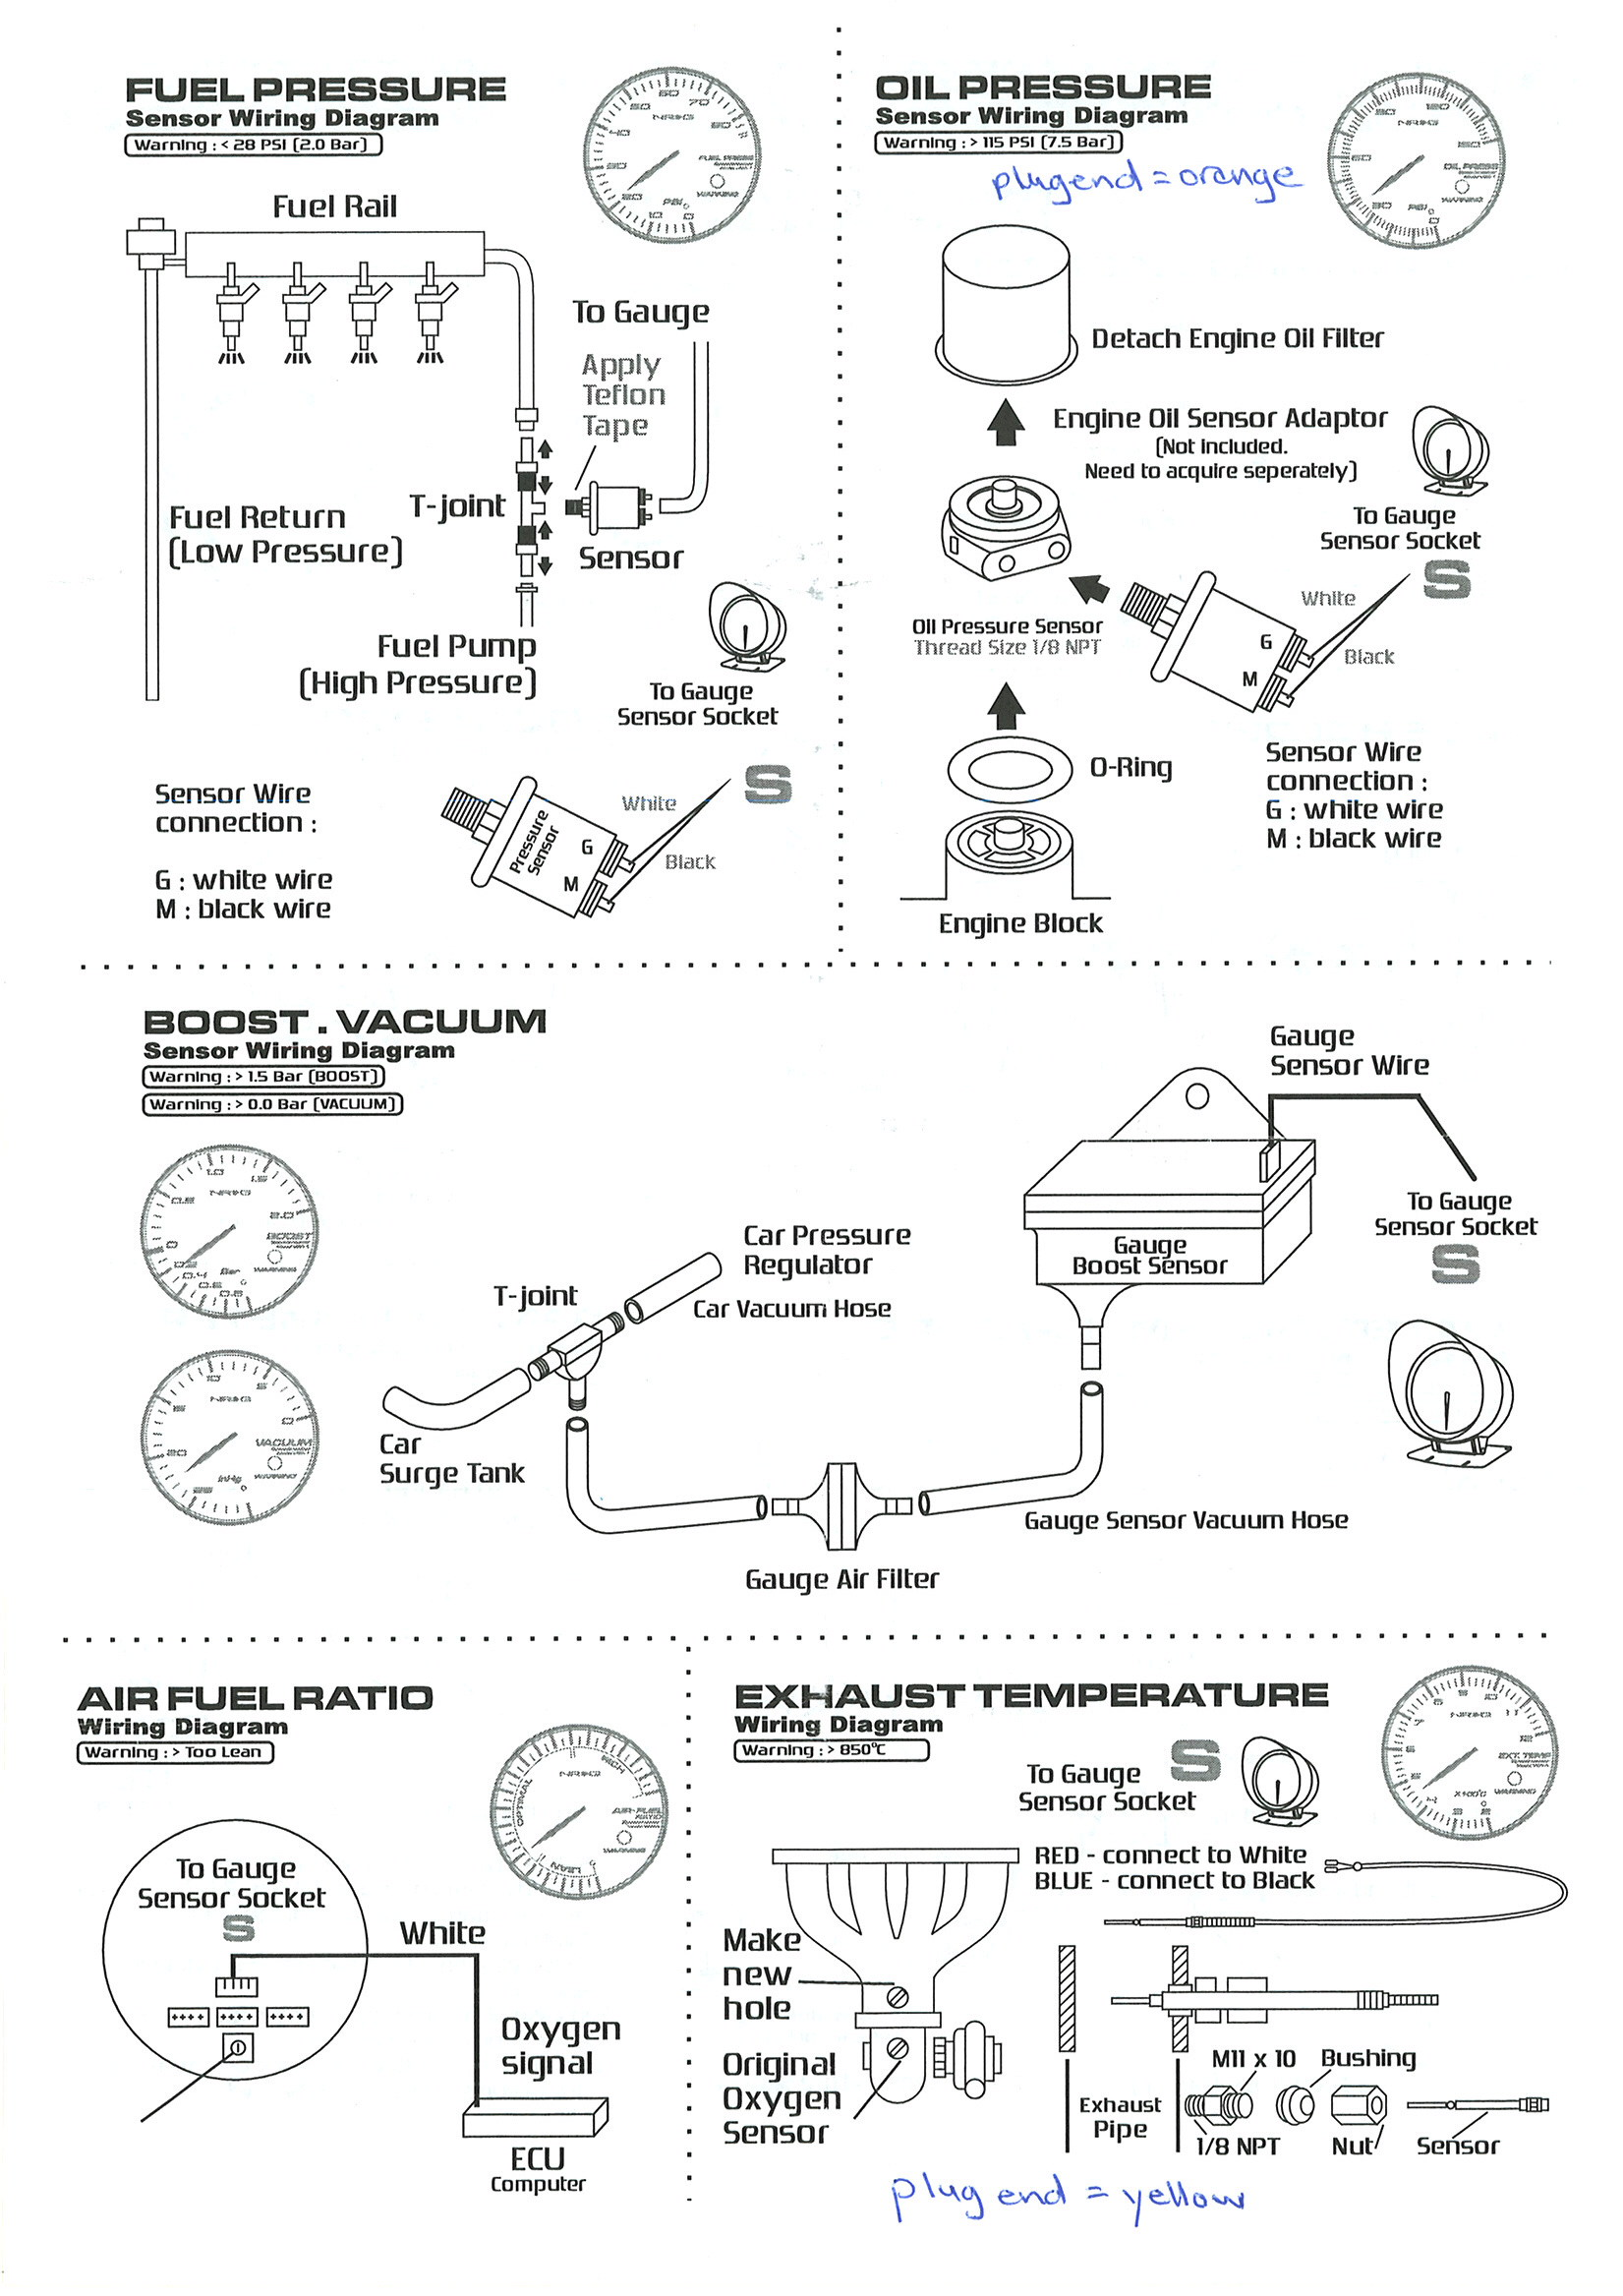 post 5748 0 46738100 1313099878 connecting a gauge!' general maintenance sau community defi tachometer wiring diagram at bayanpartner.co